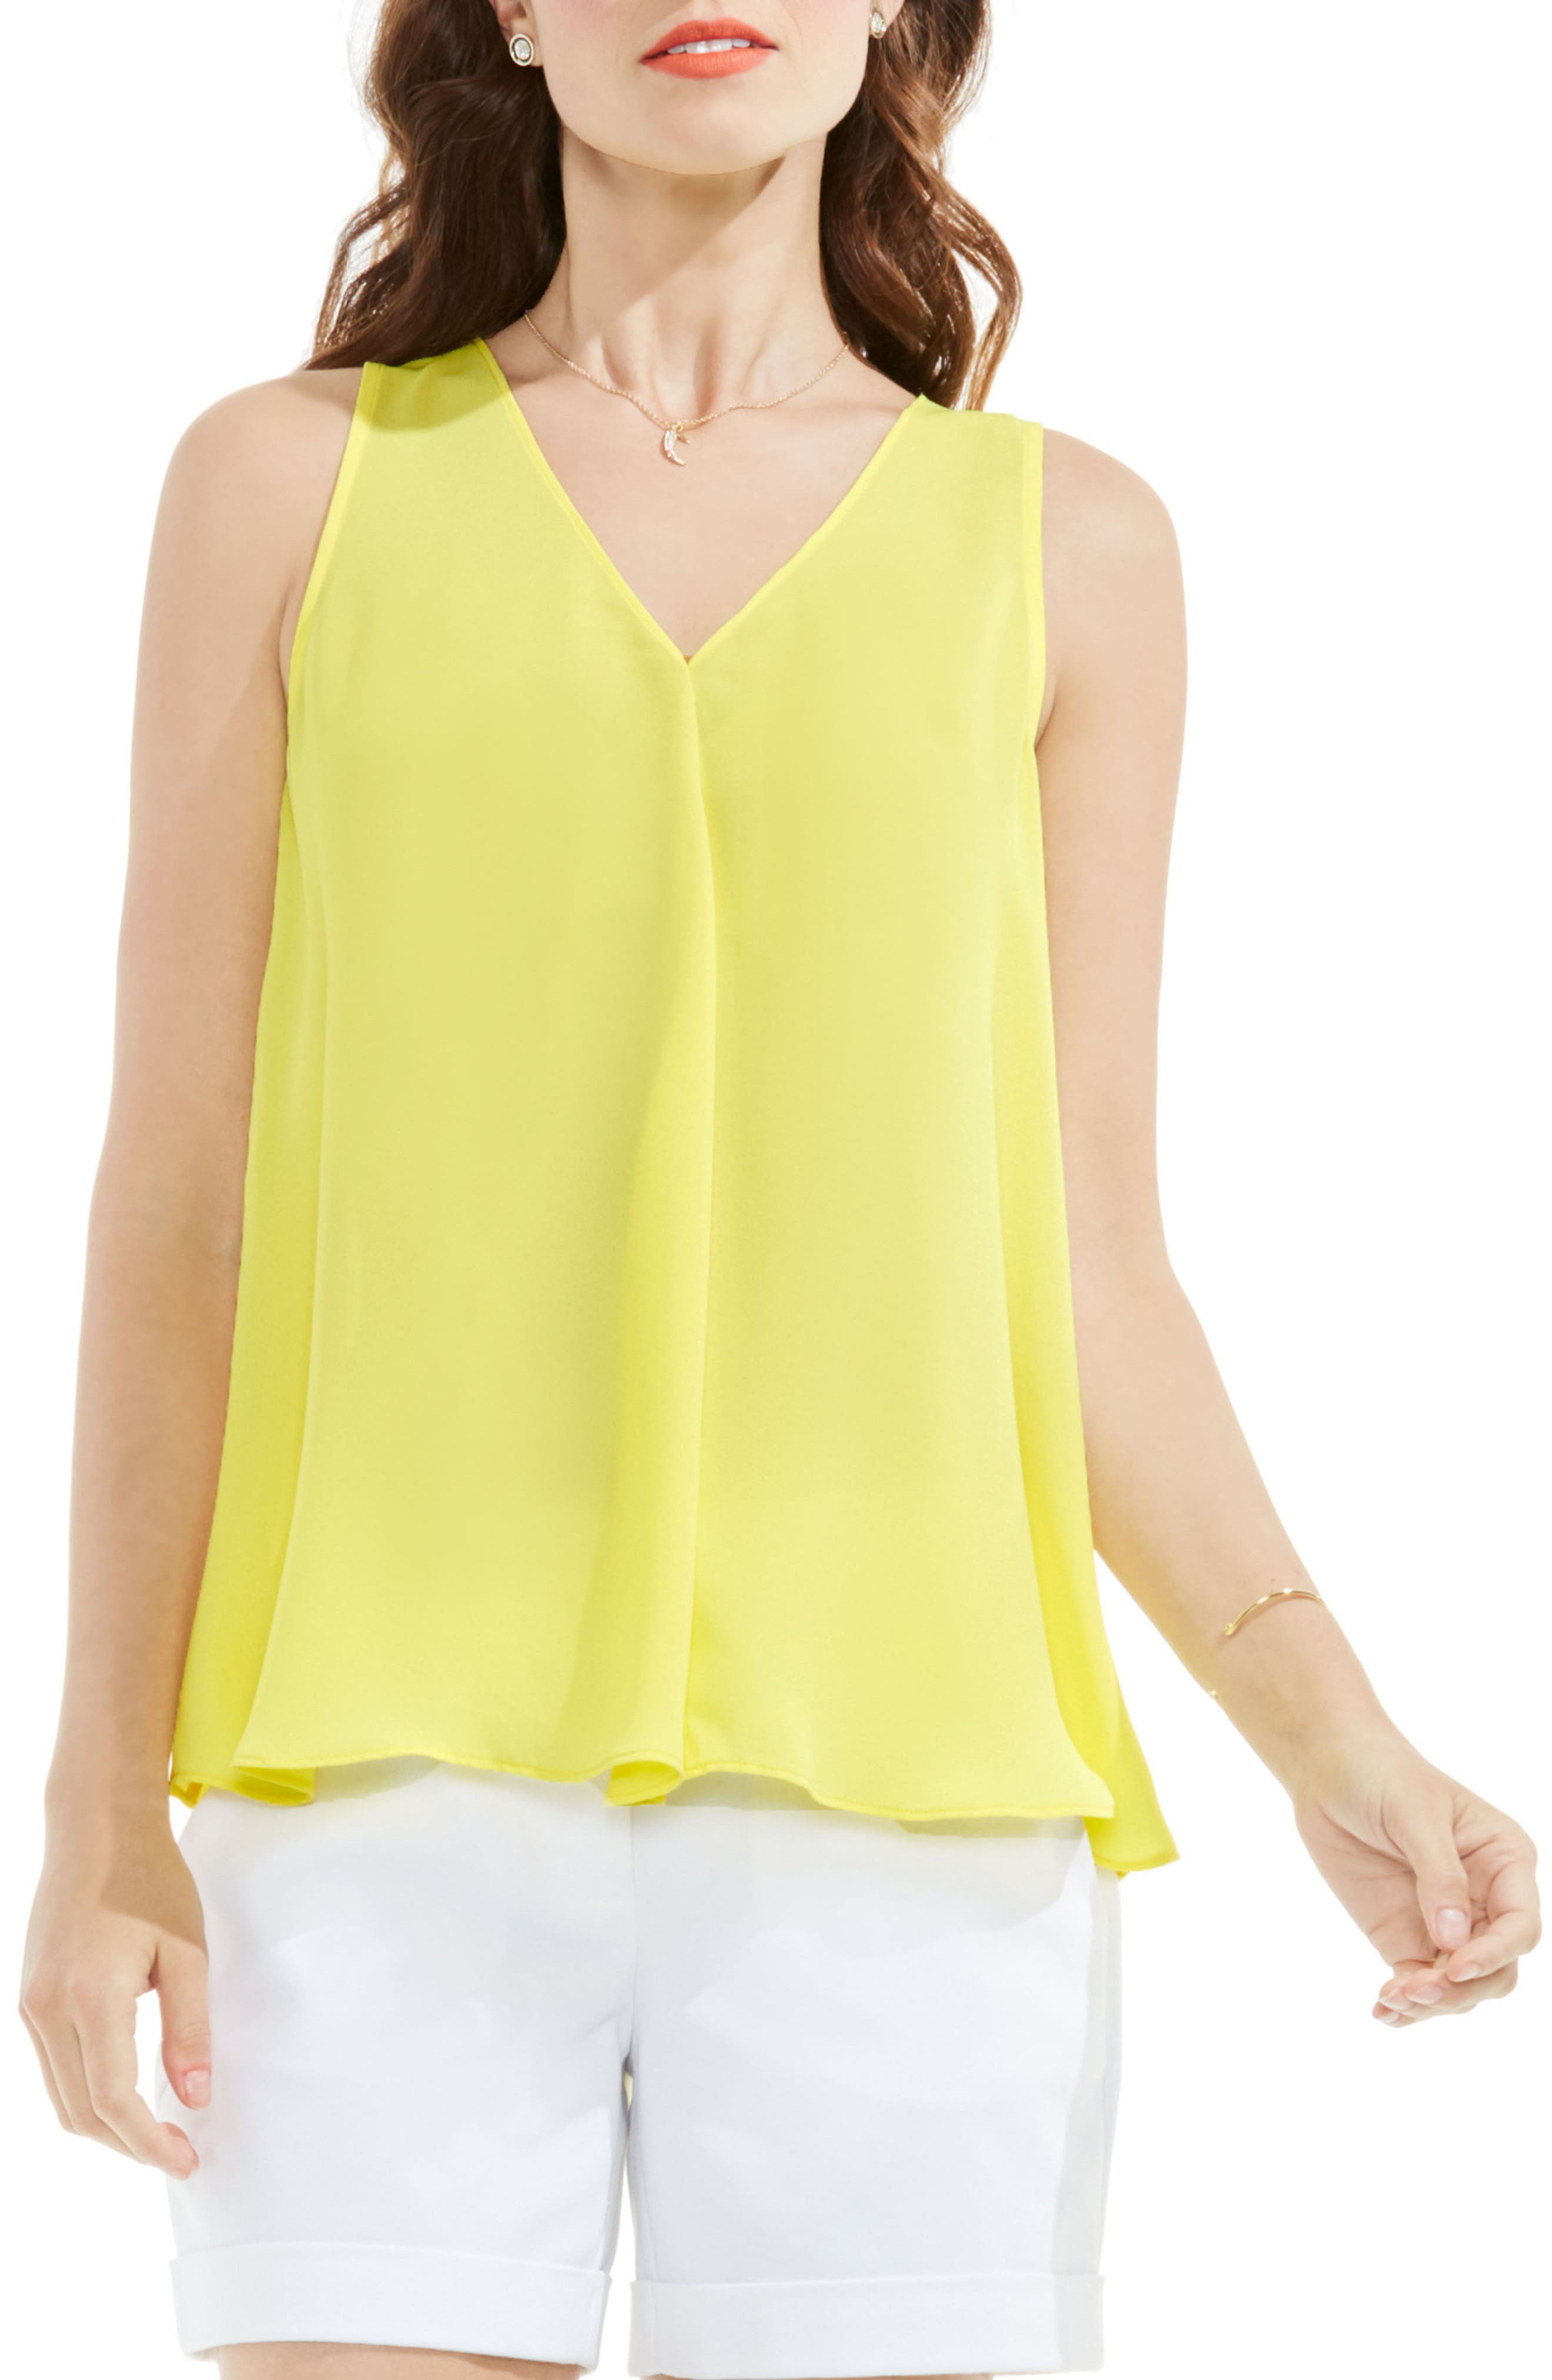 Alternate Image 1 Selected - Vince Camuto Pleat Front A-Line Blouse (Regular & Petite)